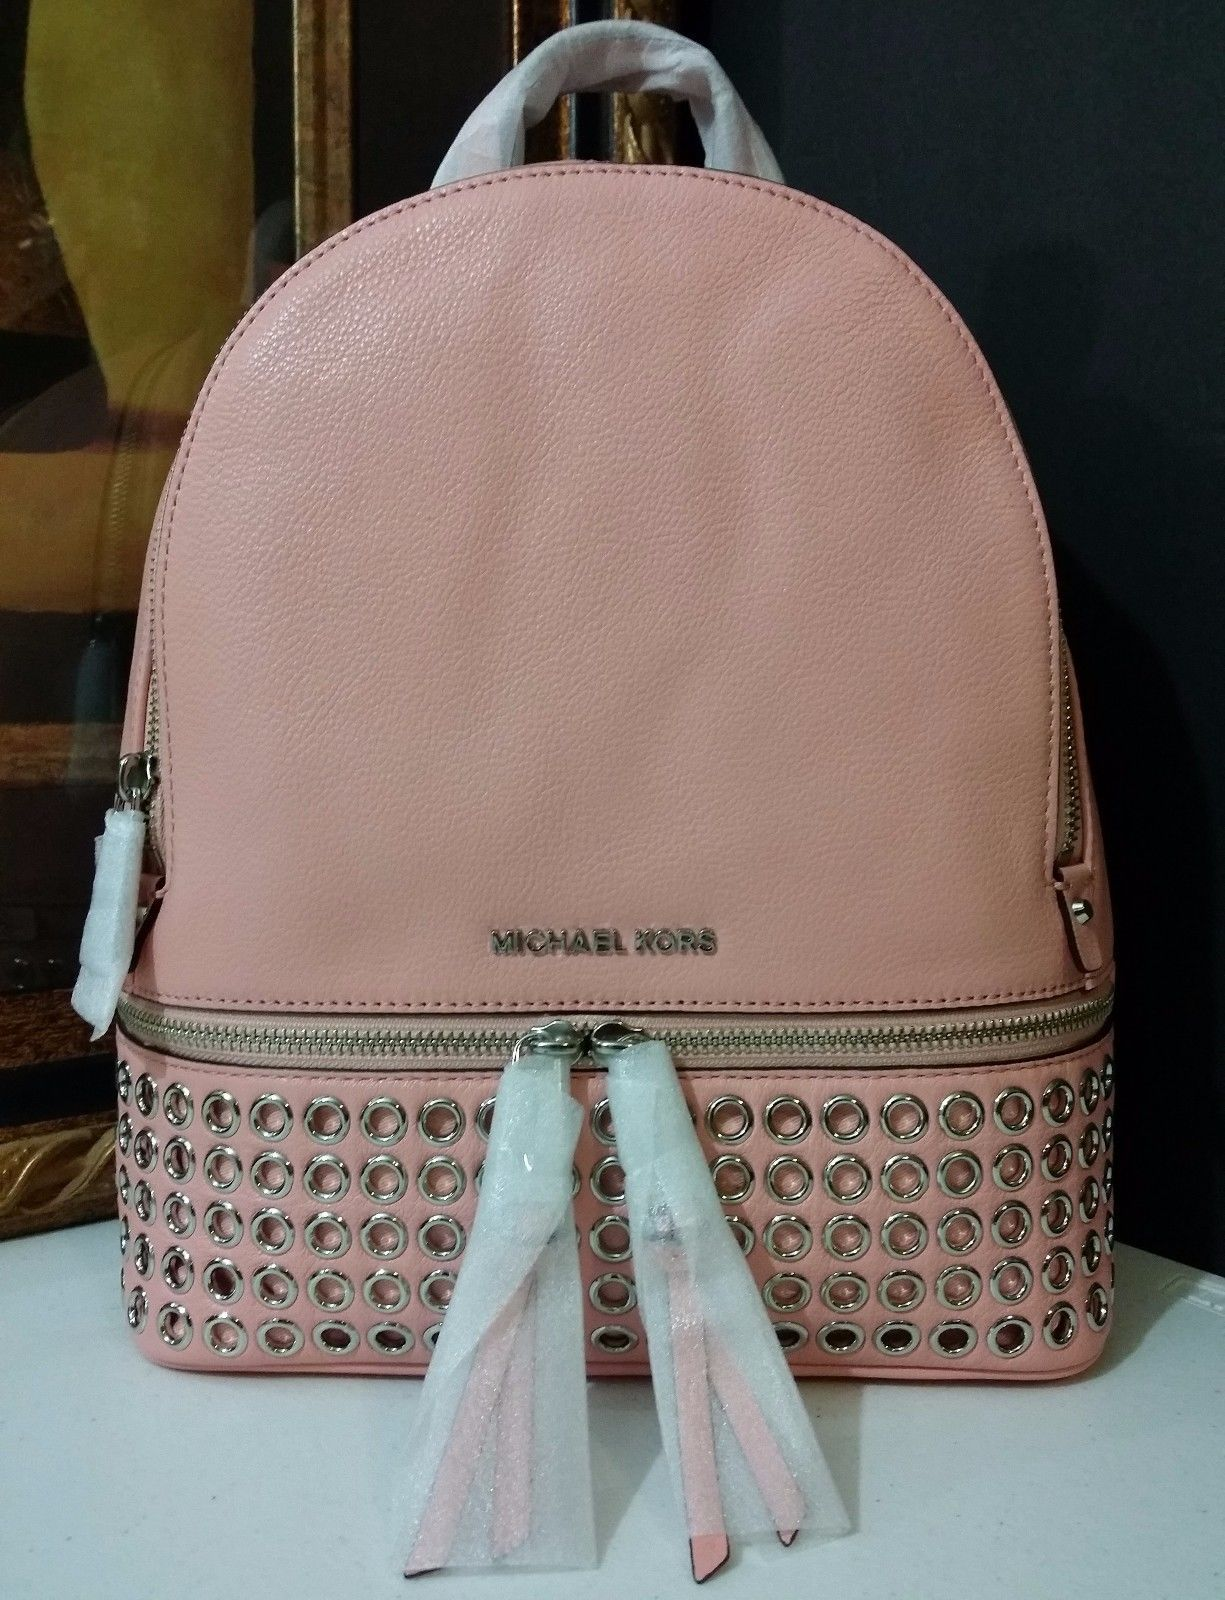 NWT Michael Kors Rhea Zip Medium Grommet Backpack Leather Pale Pink MSRP $378